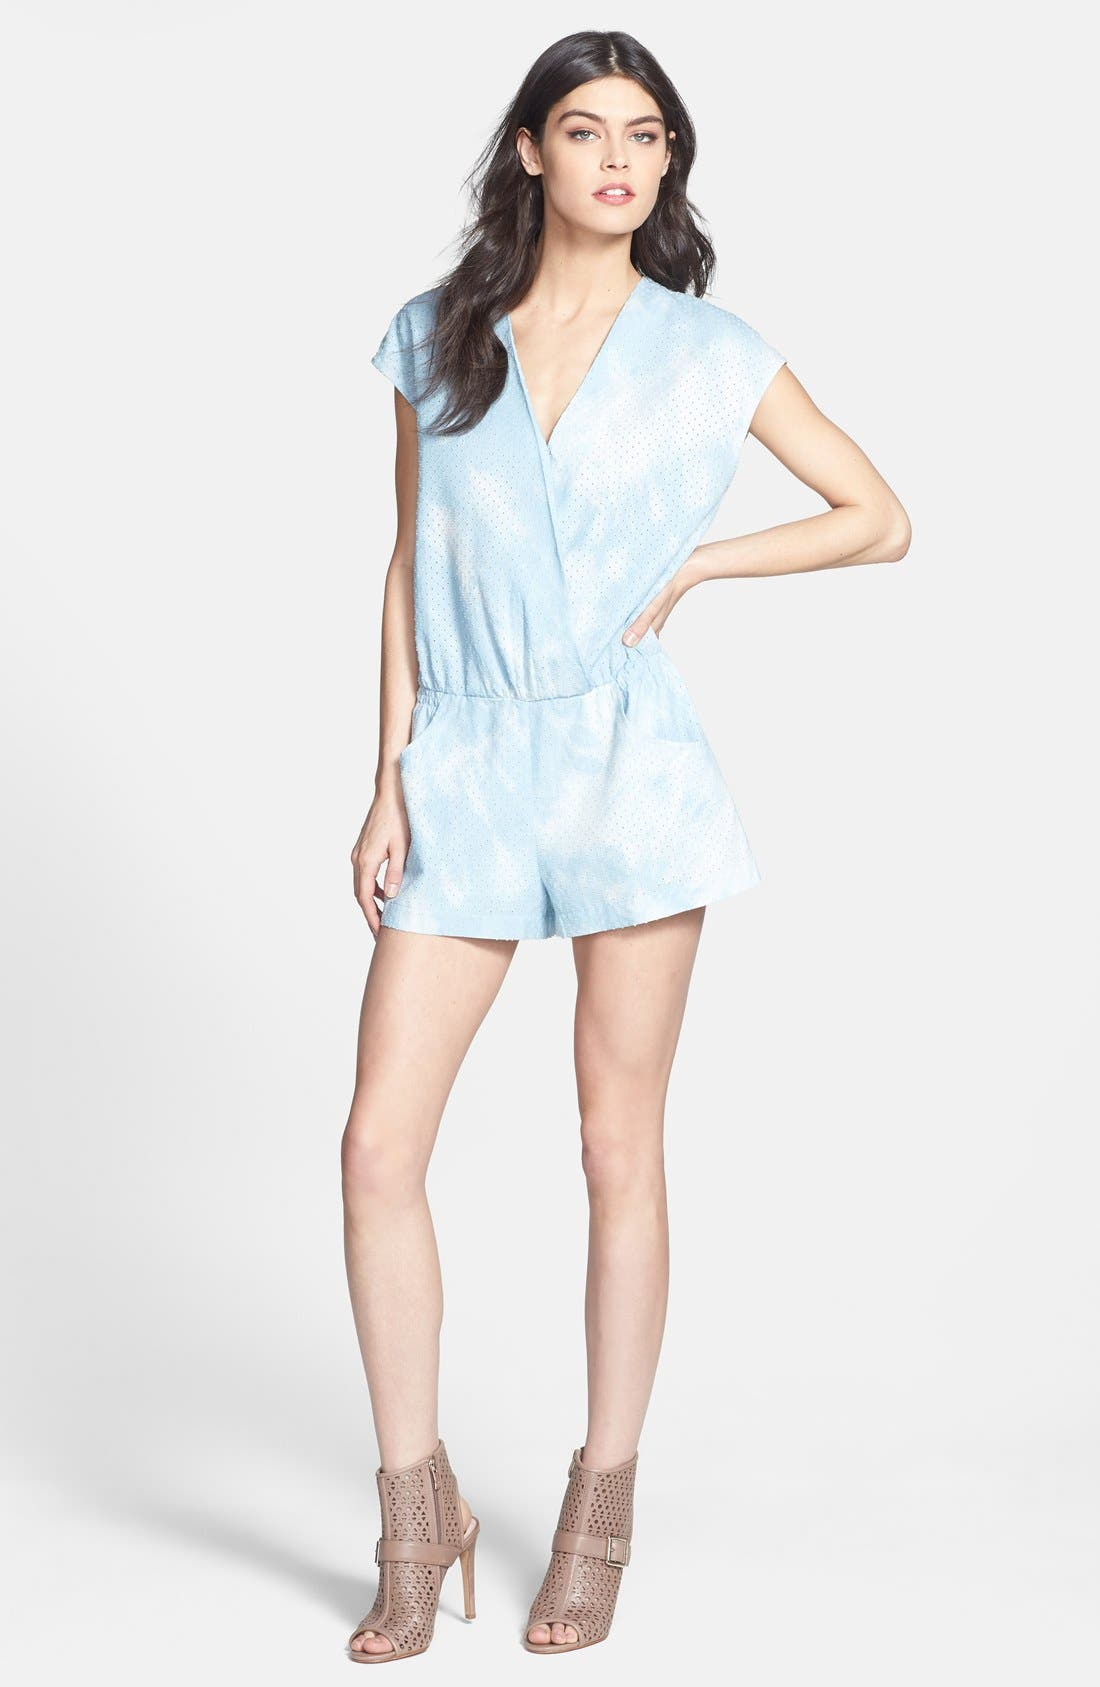 Alternate Image 1 Selected - Line & Dot Tie Dye Perforated Chambray Romper